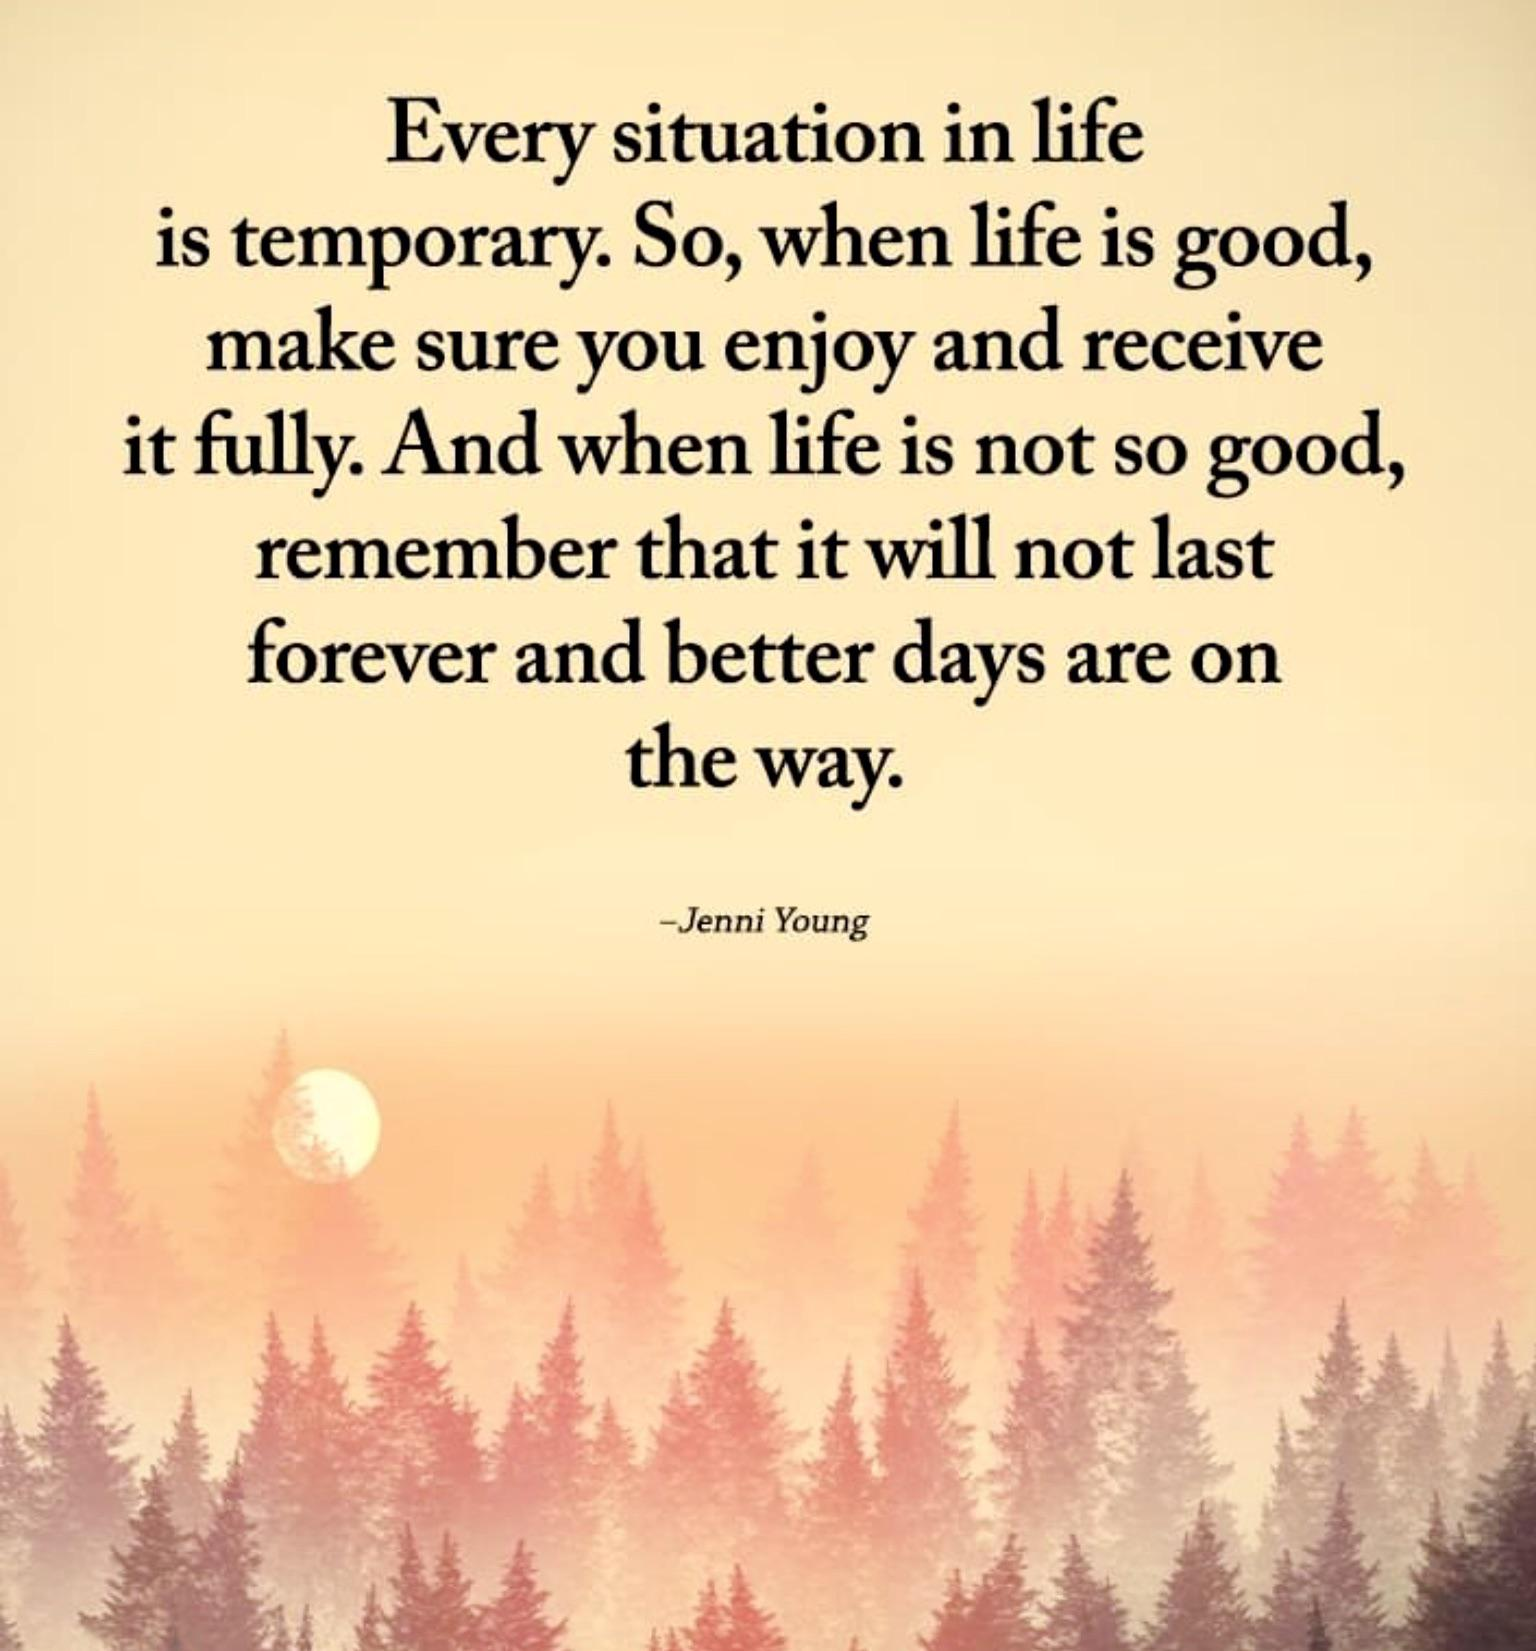 Every situation in life is temporary. ~Jenni Young [1536 X 1651]